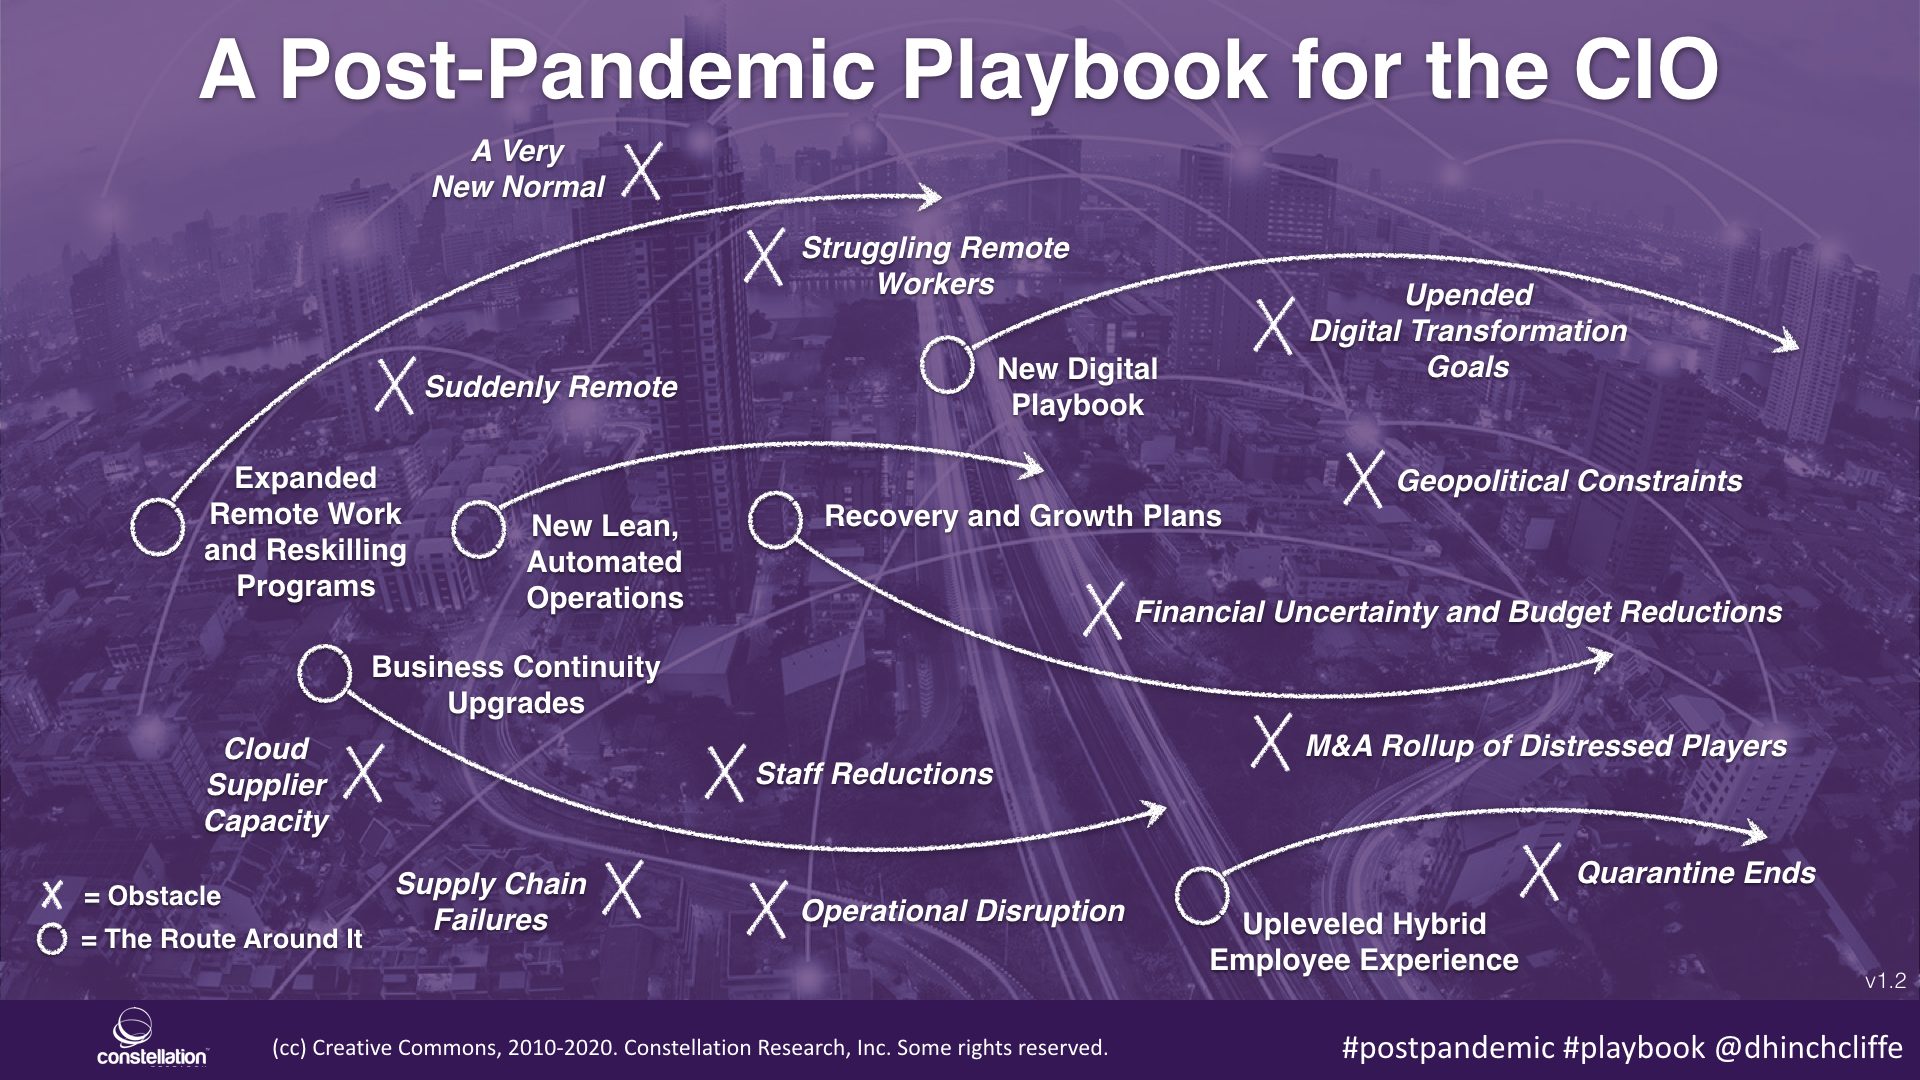 The Post-Pandemic Playbook for the CIO